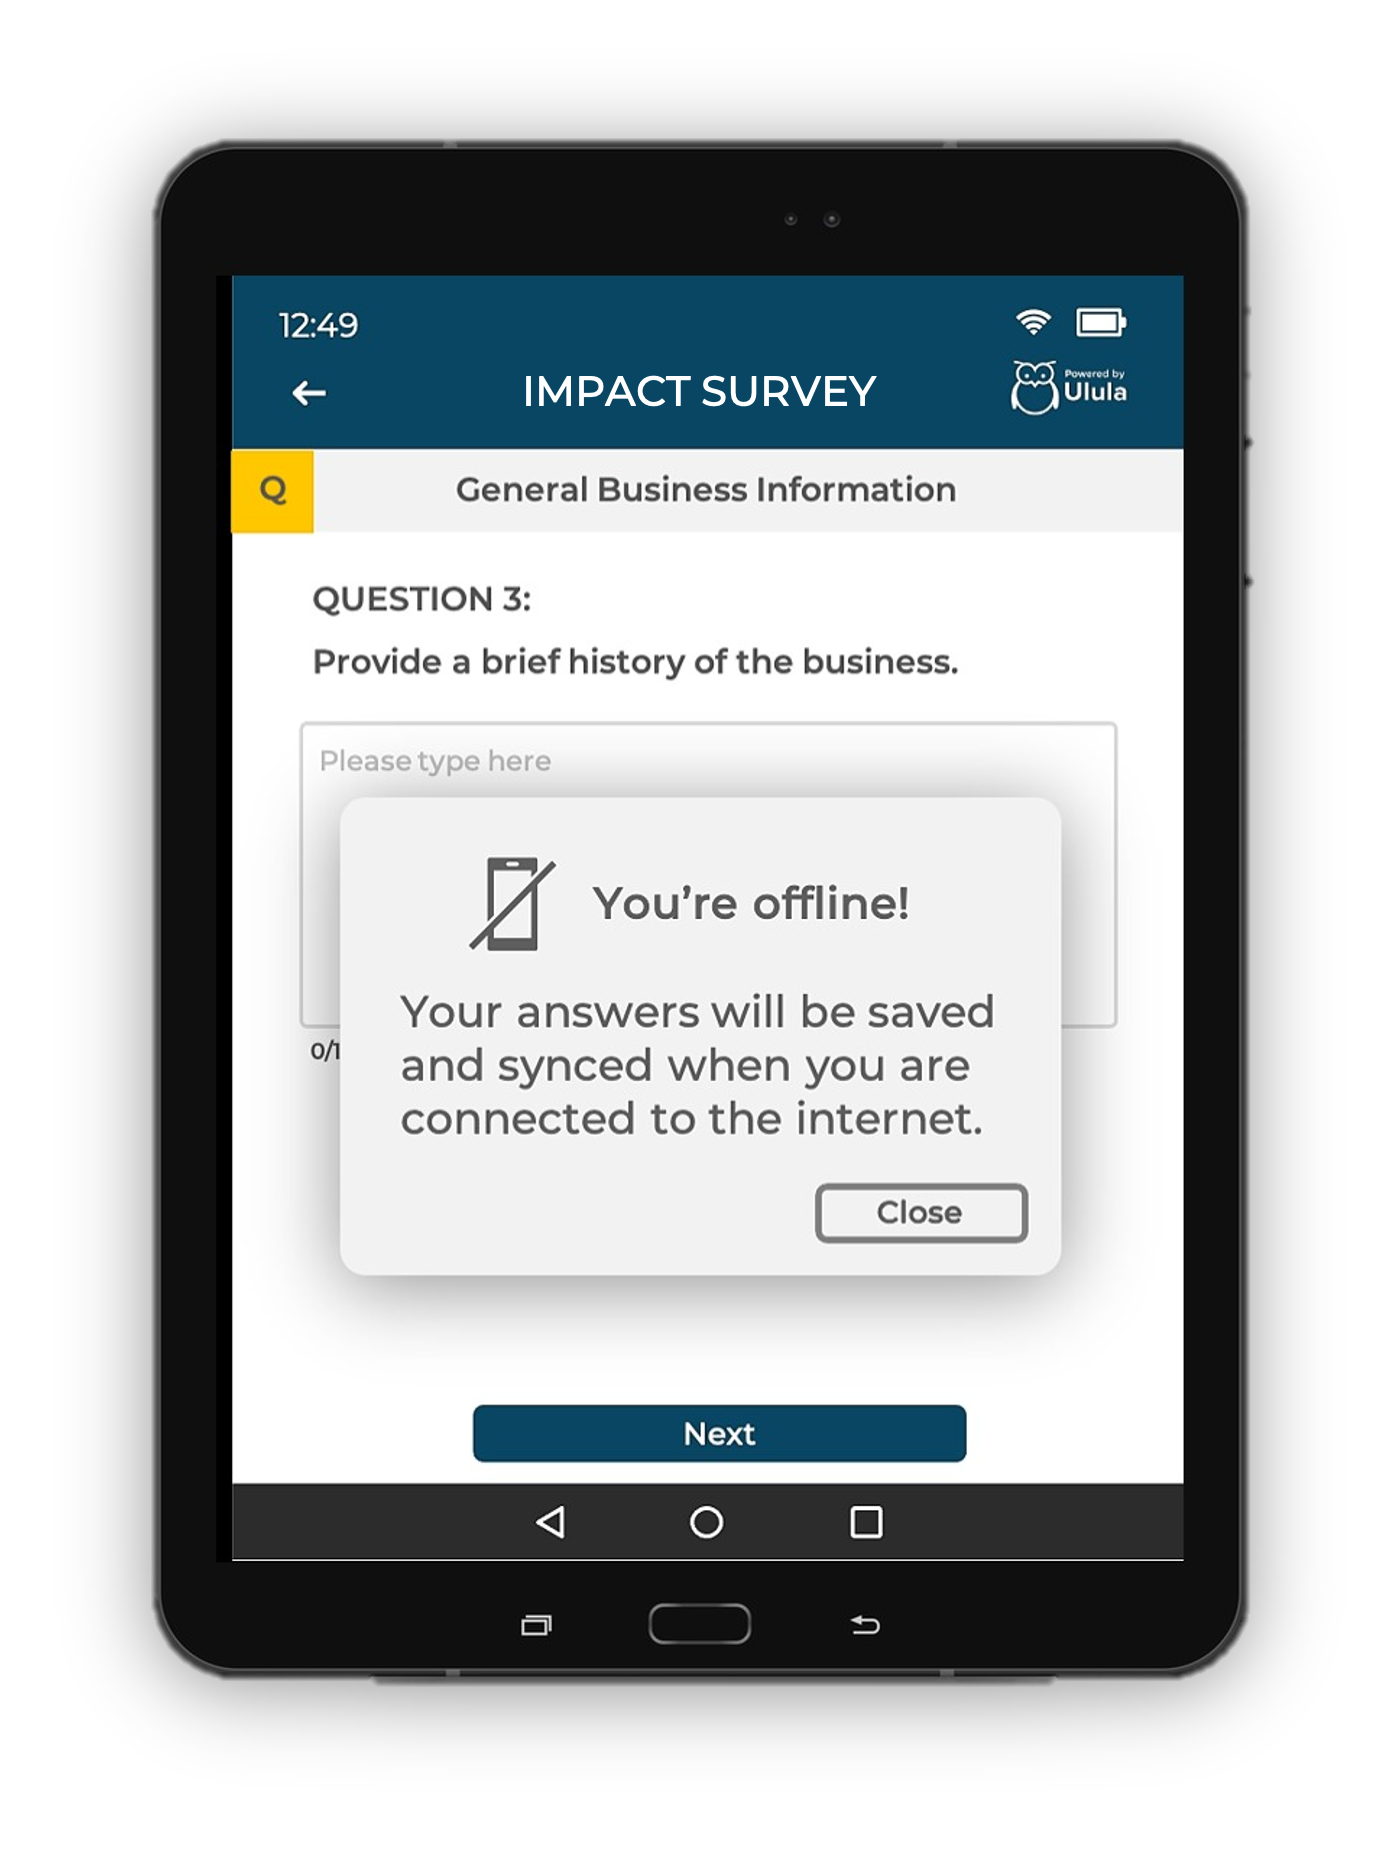 Android tablet showing a survey question from Ulula's Owlyfield app with a pop-up message notifying that the user is offline